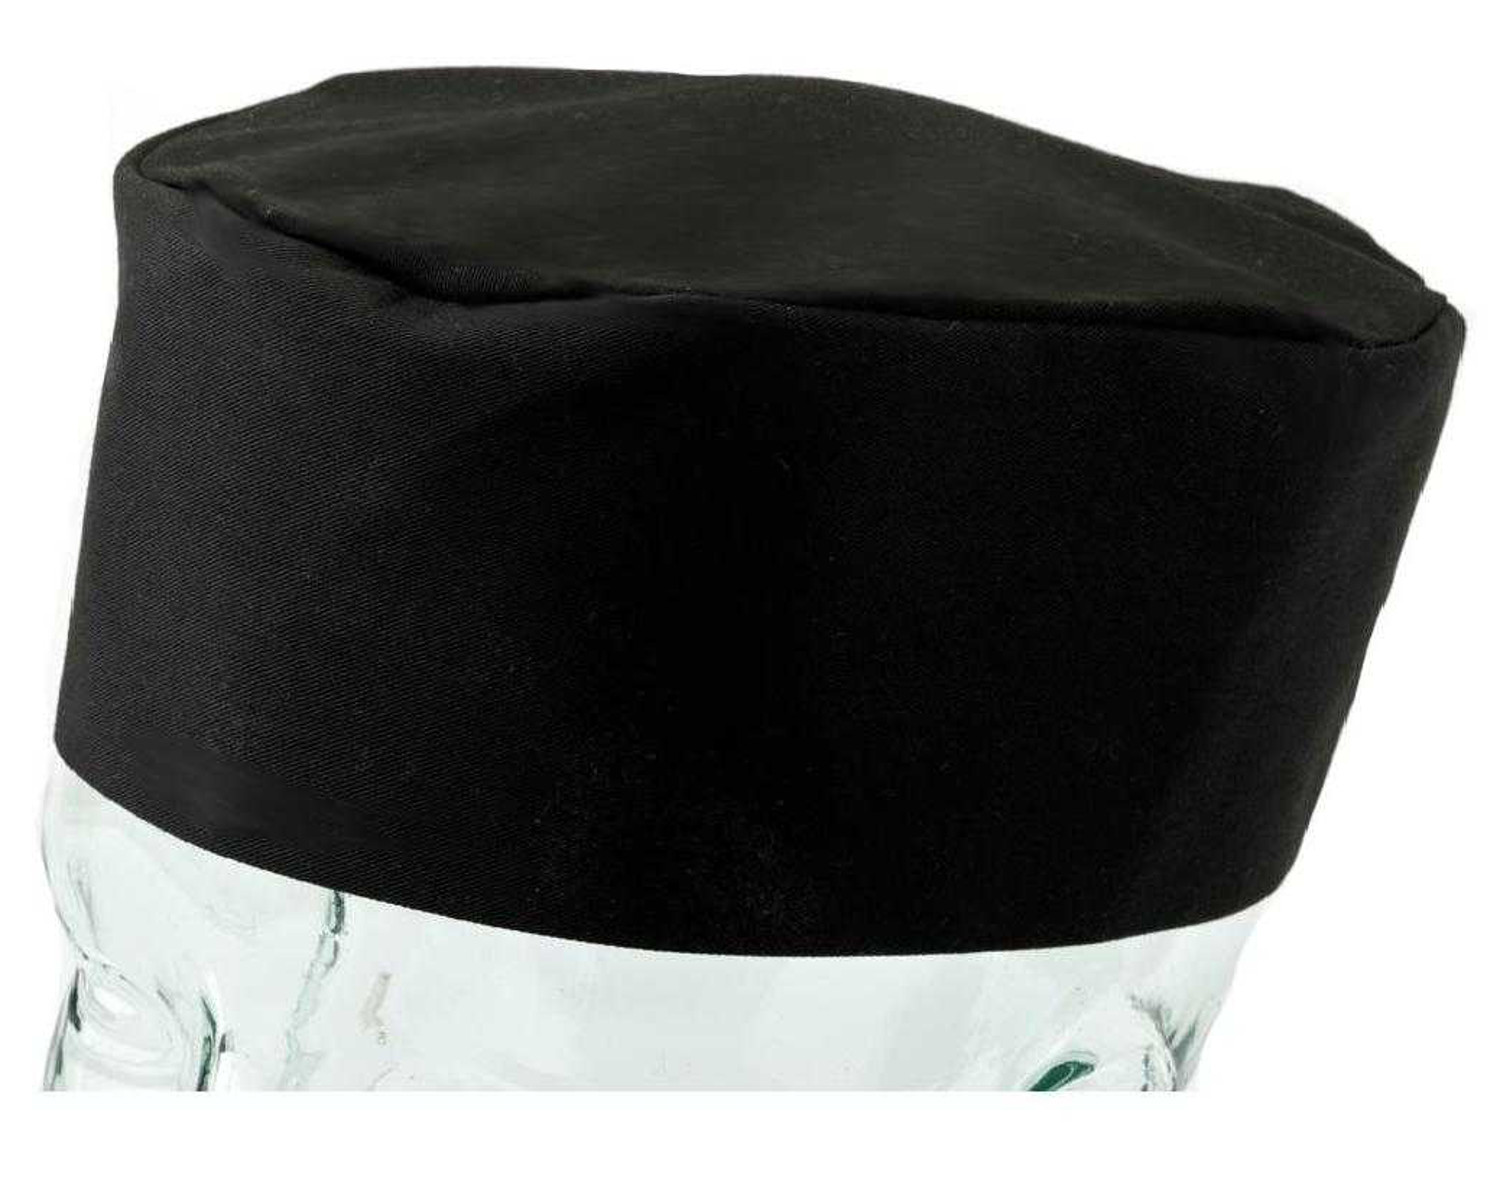 Polycotton Chefs Skull Cap Cool Cooking Kitchen Catering Hat Pack for Hats For Kitchen Staff